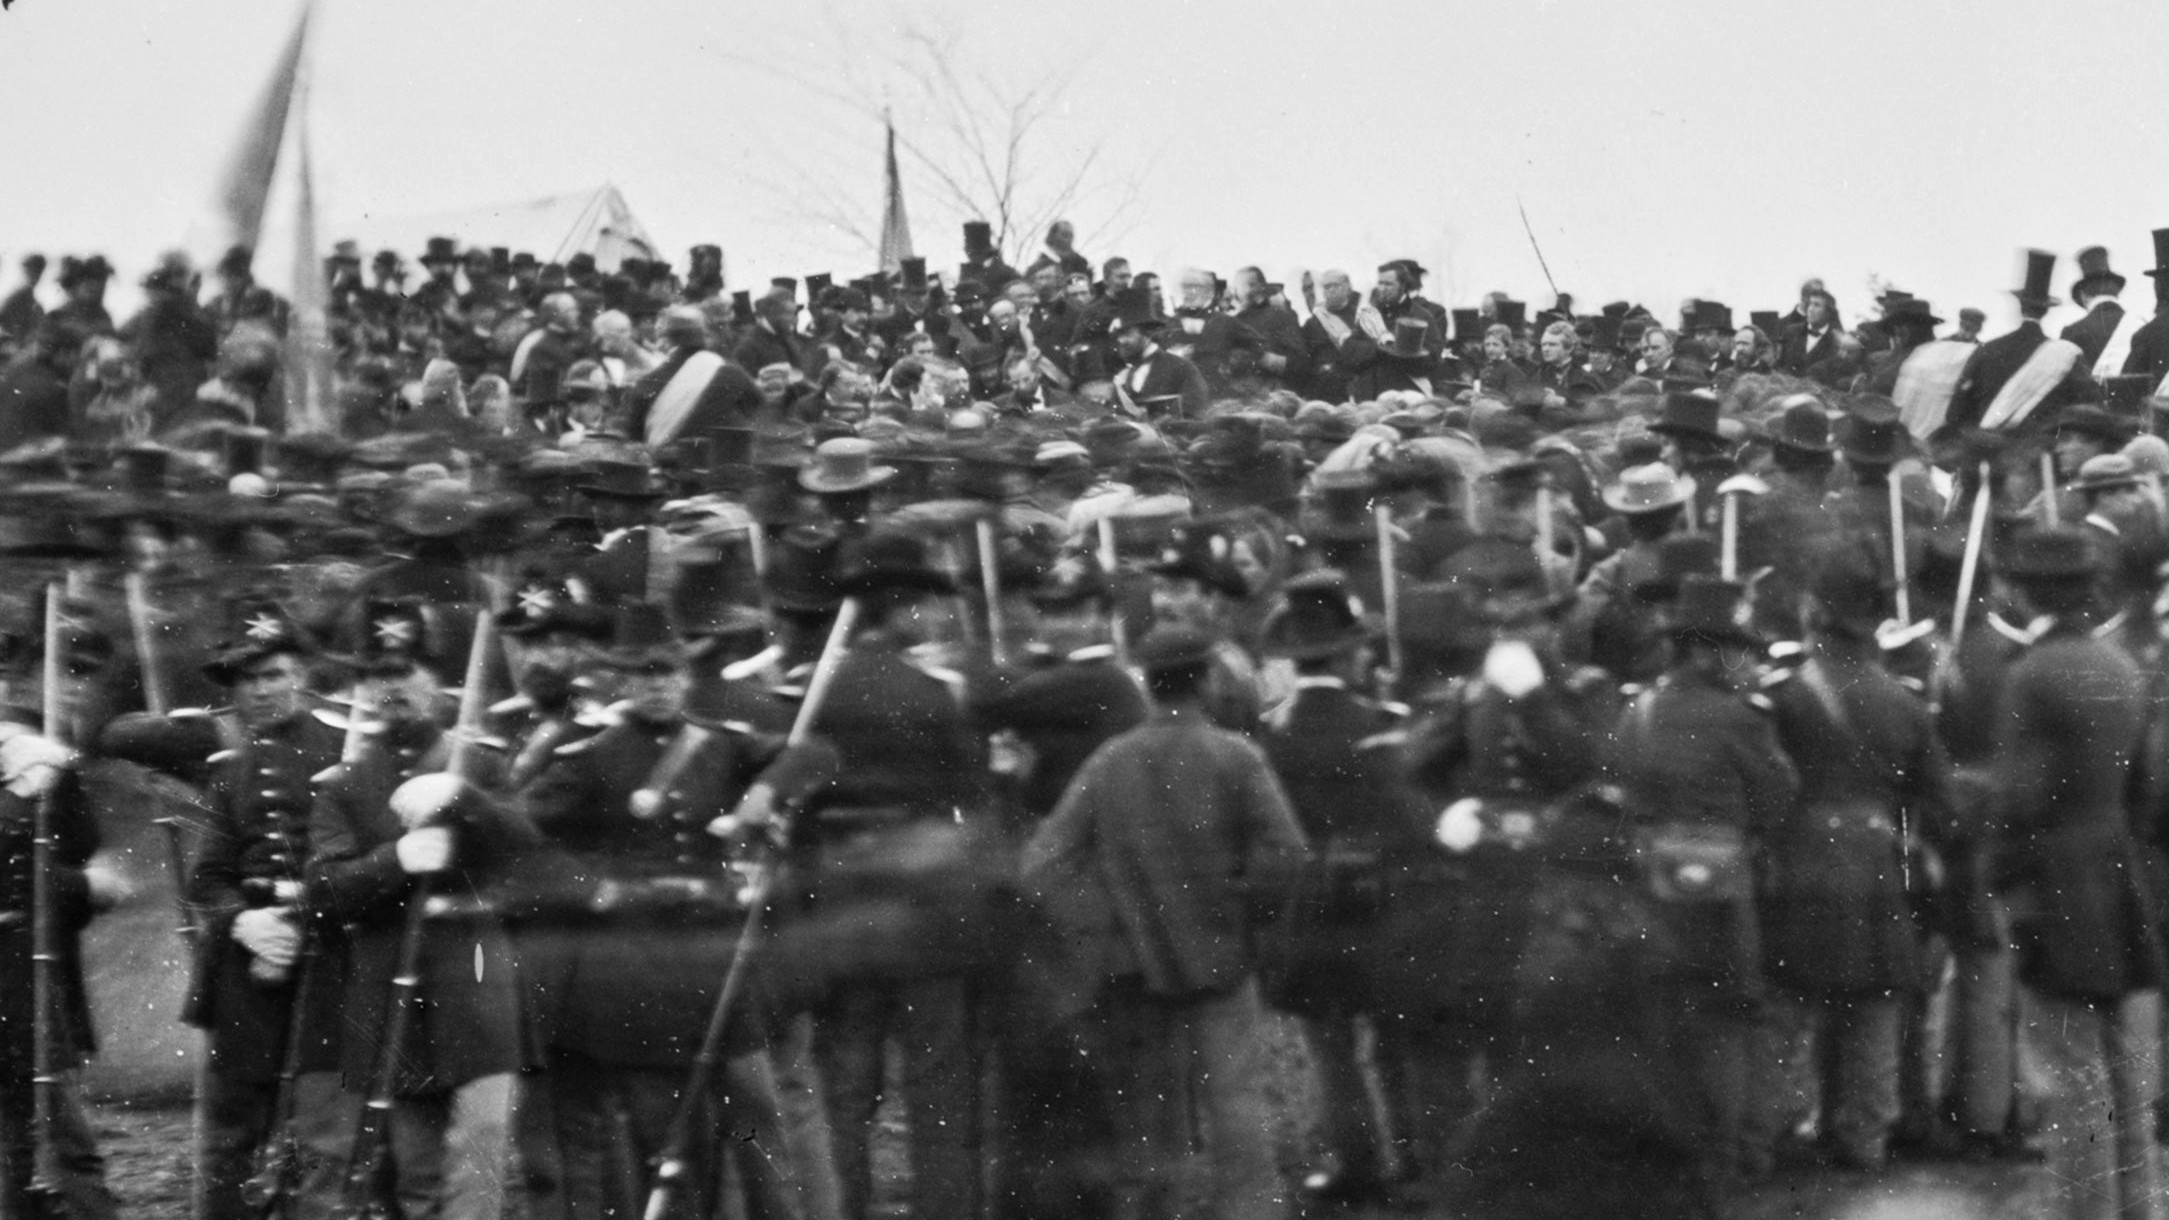 a history of the battle of gettysburg Surround sound and sweeping imagery tell the story of the battle of gettysburg  within the context and causes of the american civil war in the film, a new birth of .